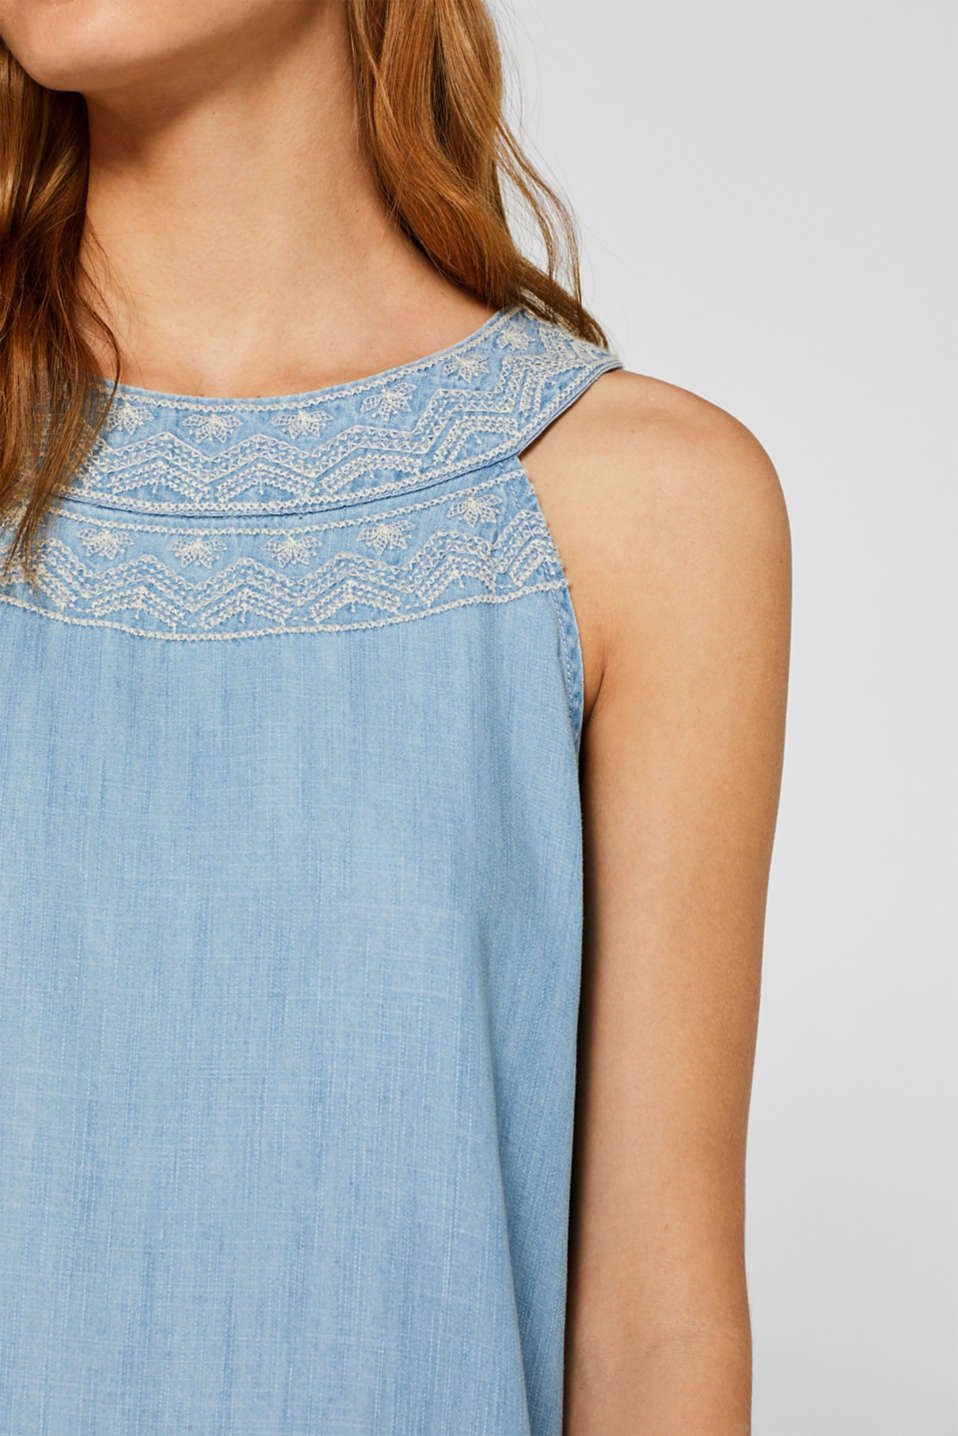 Embroidered dress made of 100% lyocell, BLUE LIGHT WASH, detail image number 3